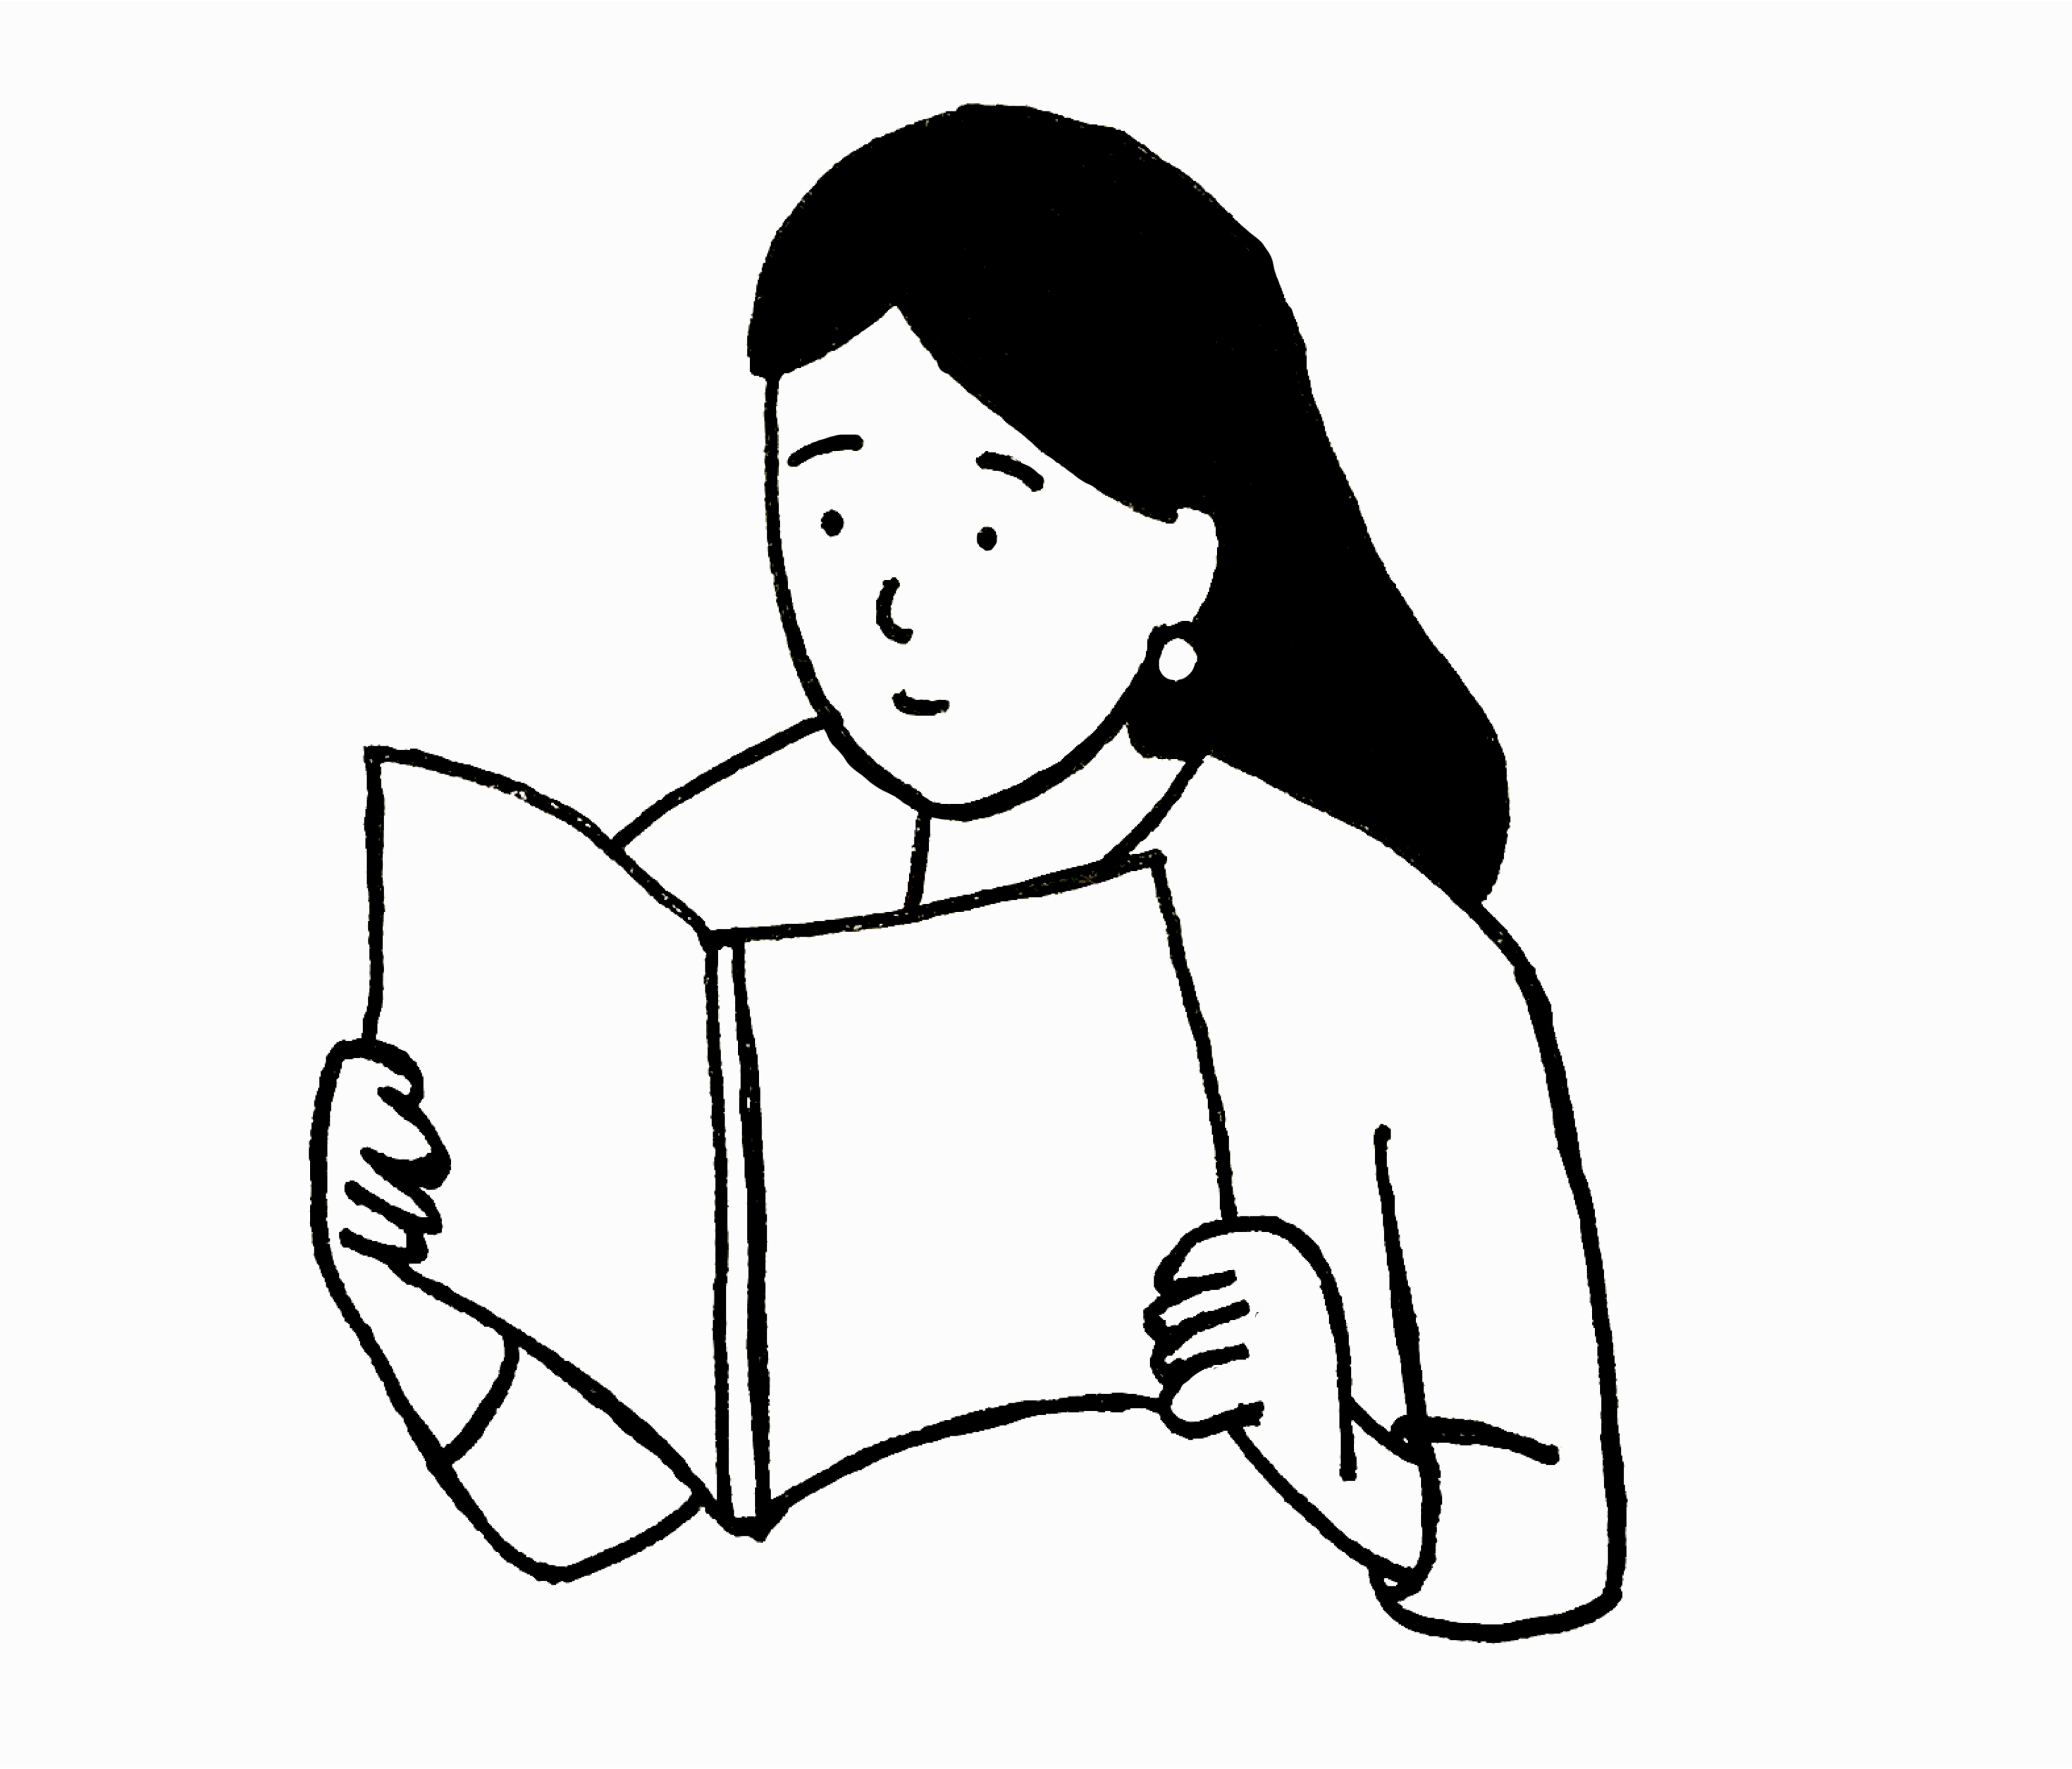 An illustration of a woman reading a book.